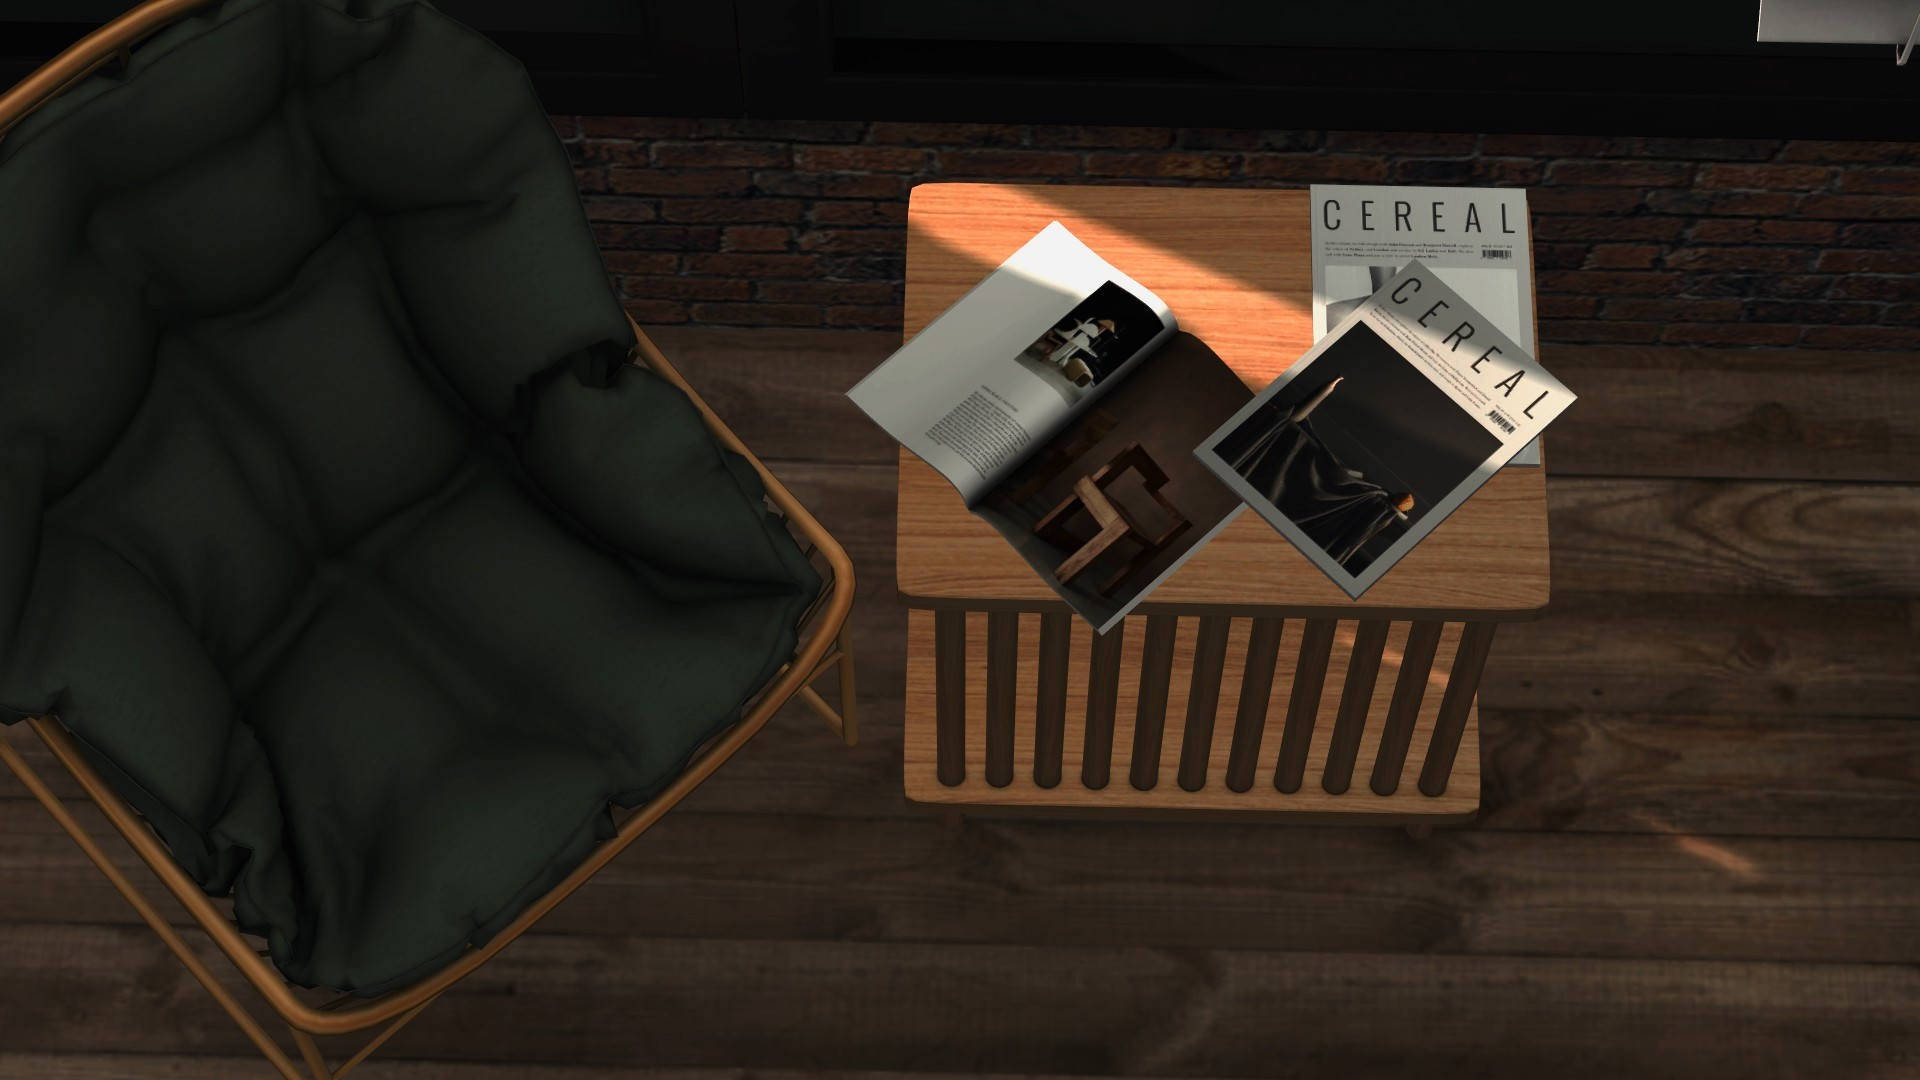 Cereal magazine Collection, high quality sims 4 cc, sunkissedlilacs, free sims 4 furniture, sims 4 custom content,